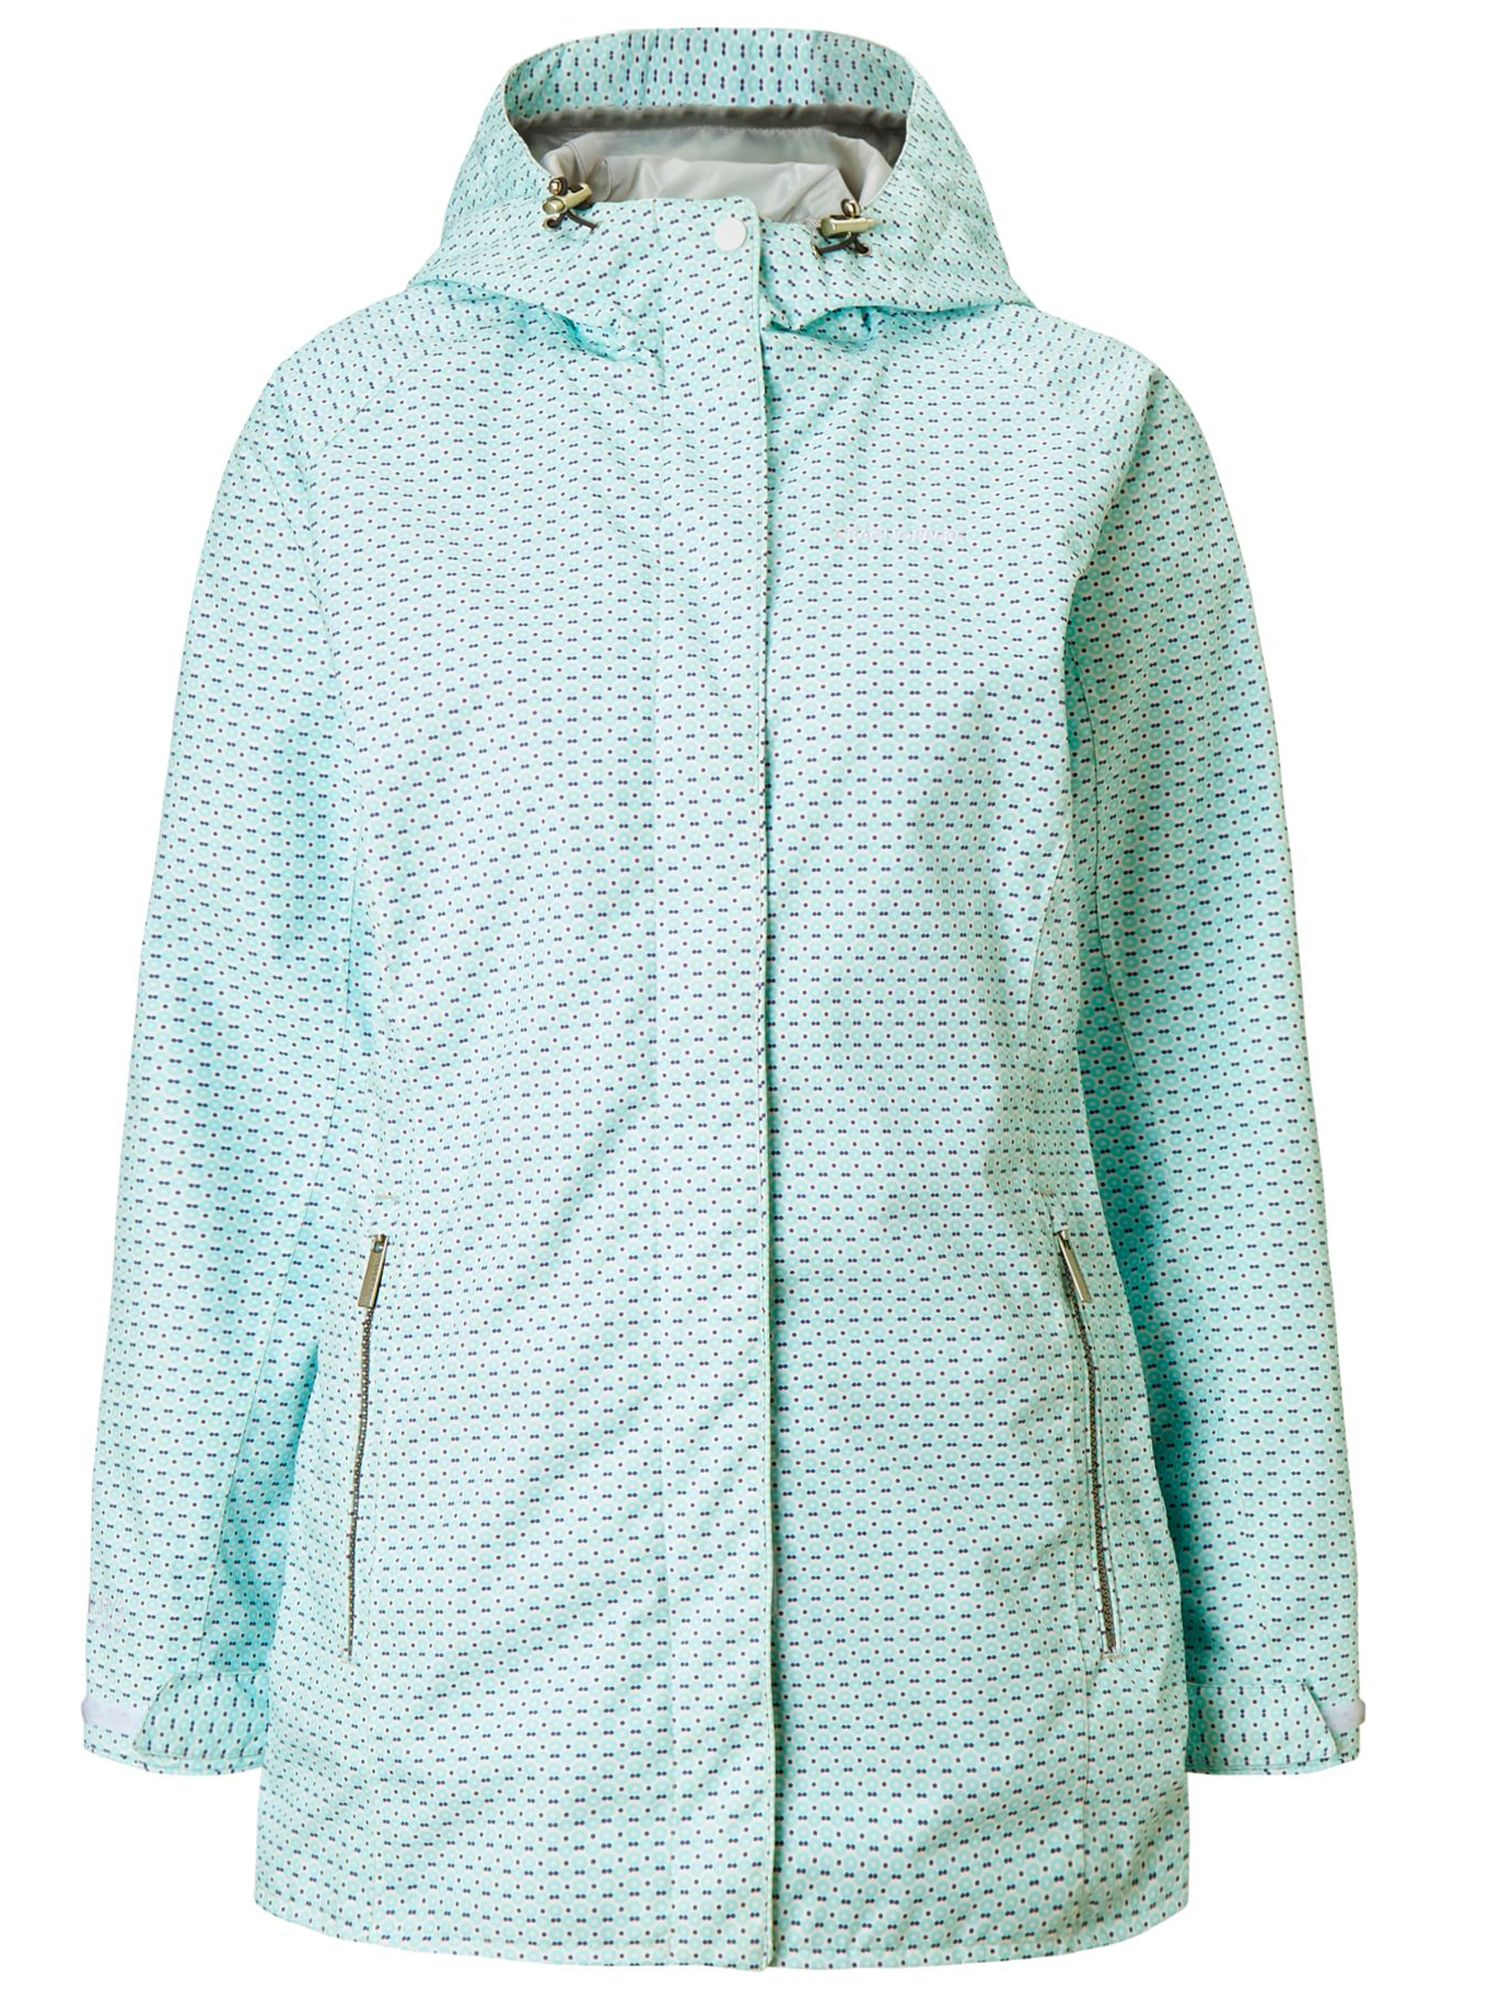 Craghoppers Madigan Classic Waterproof Jacket, Sea